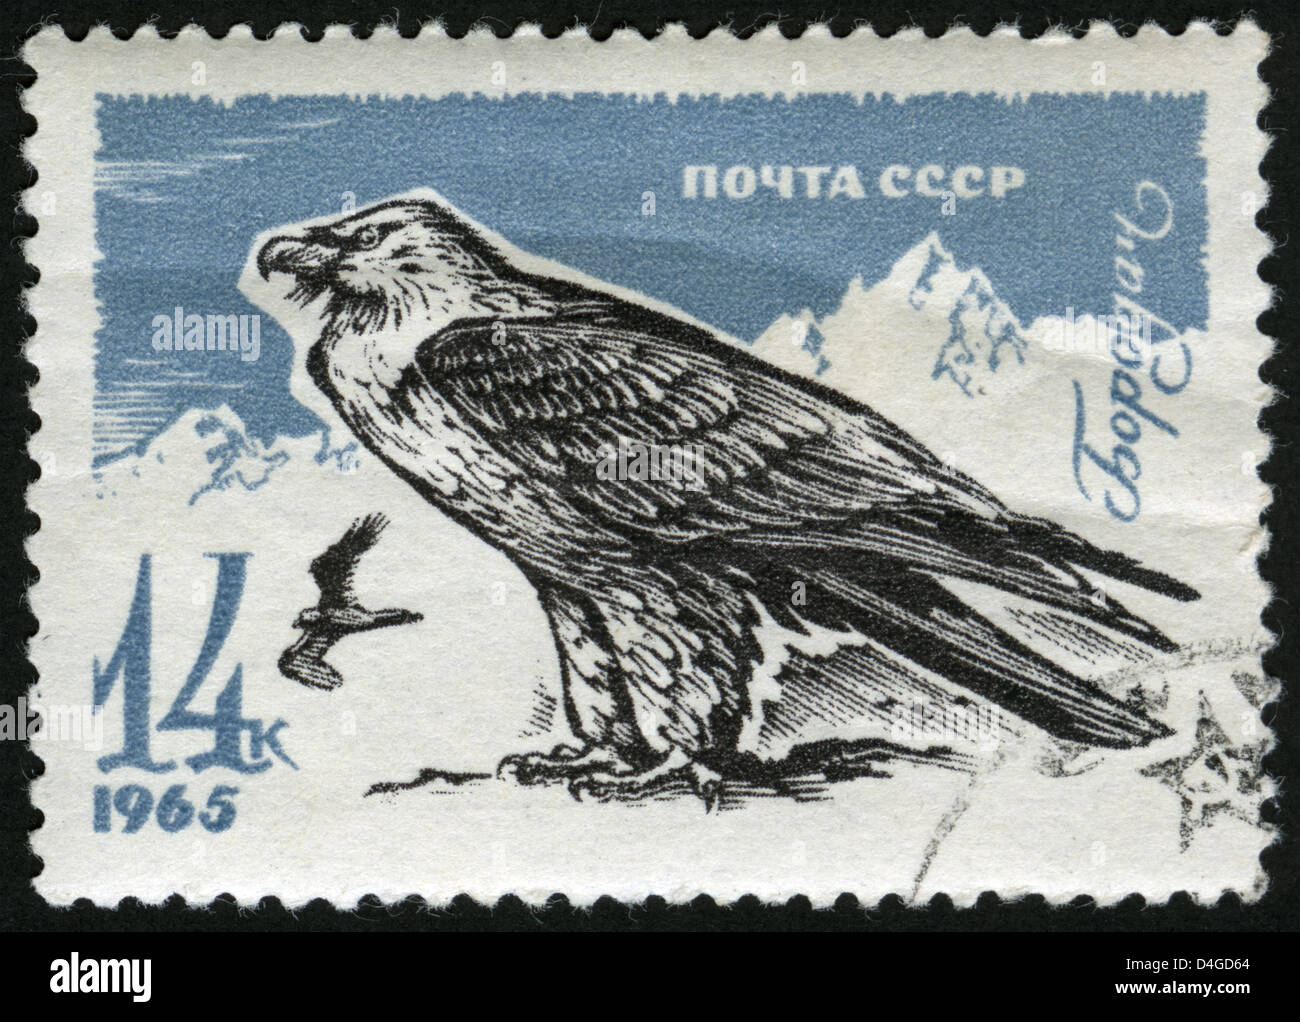 Birds of the USSR